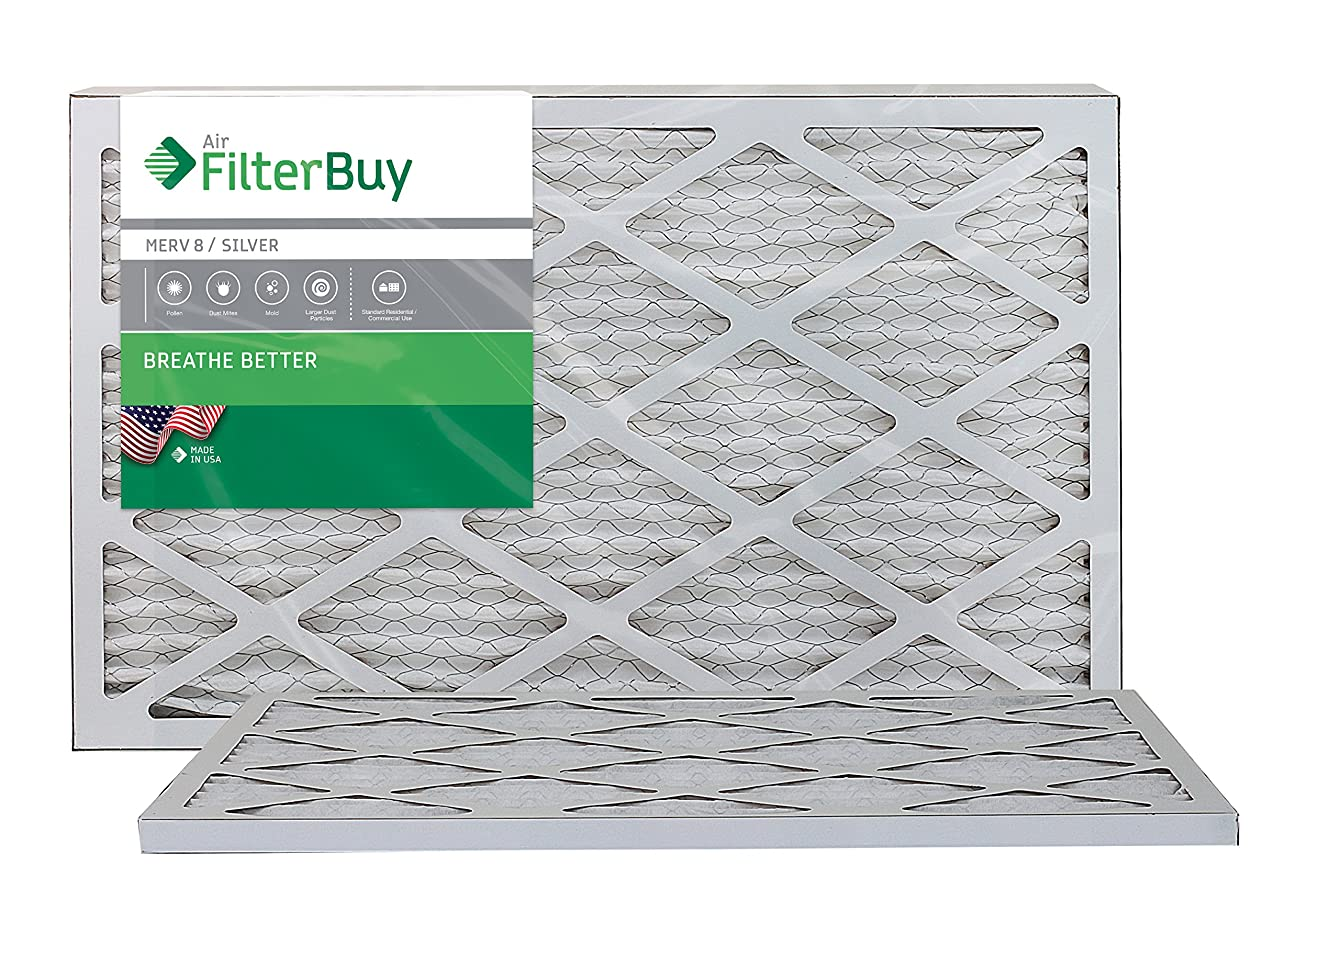 FilterBuy 15x25x1 MERV 8 Pleated AC Furnace Air Filter, (Pack of 2 Filters), 15x25x1 – Silver